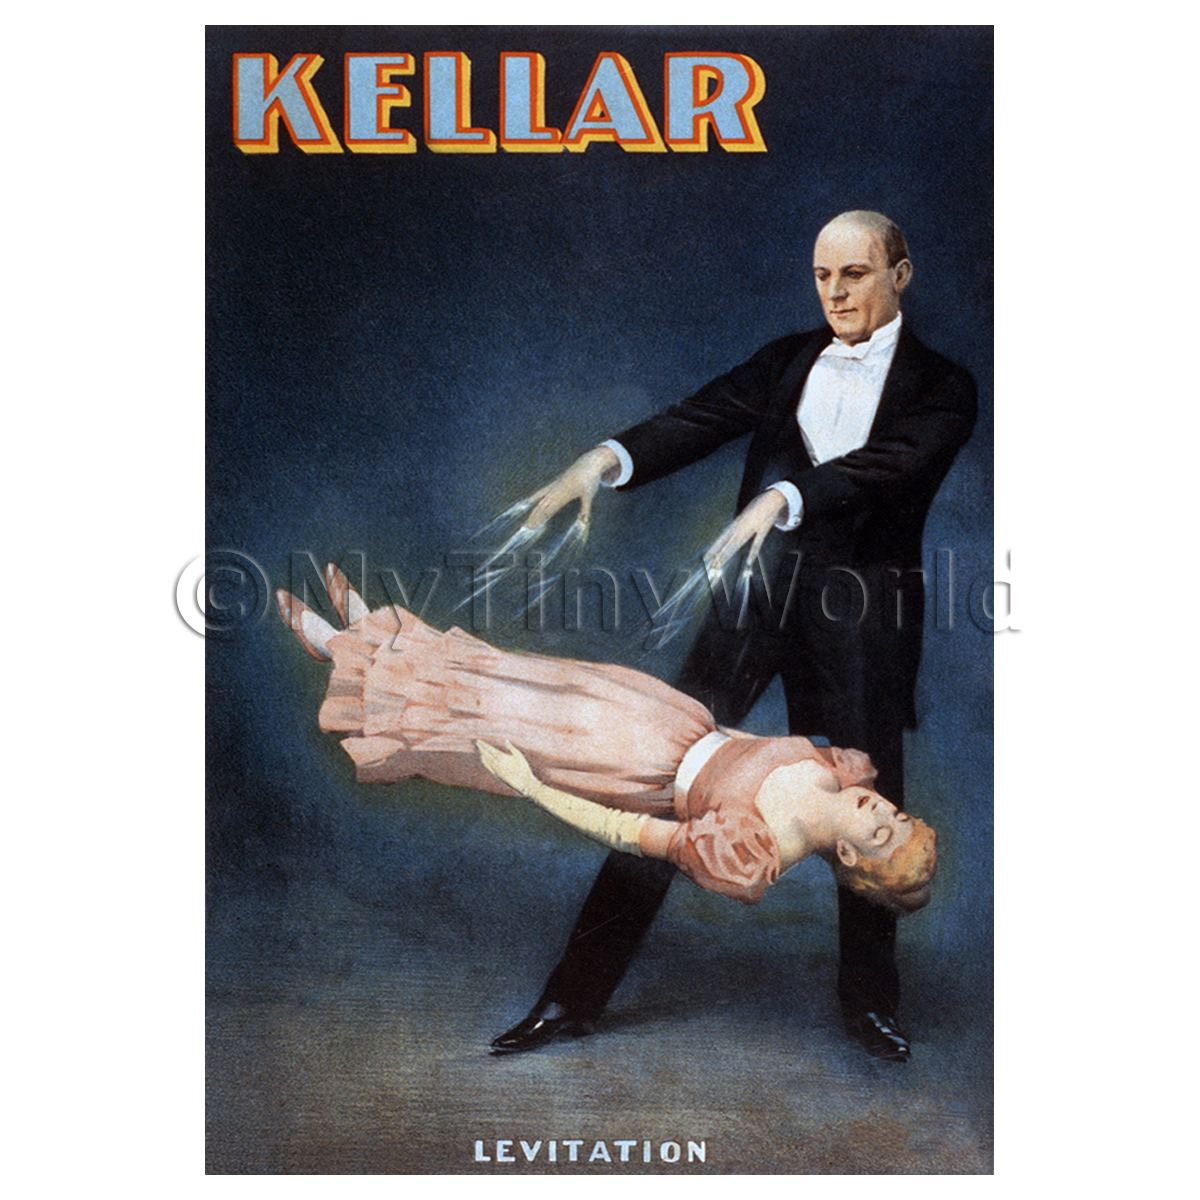 Dolls House Miniature Kellar Magic Poster - Lady Levitation